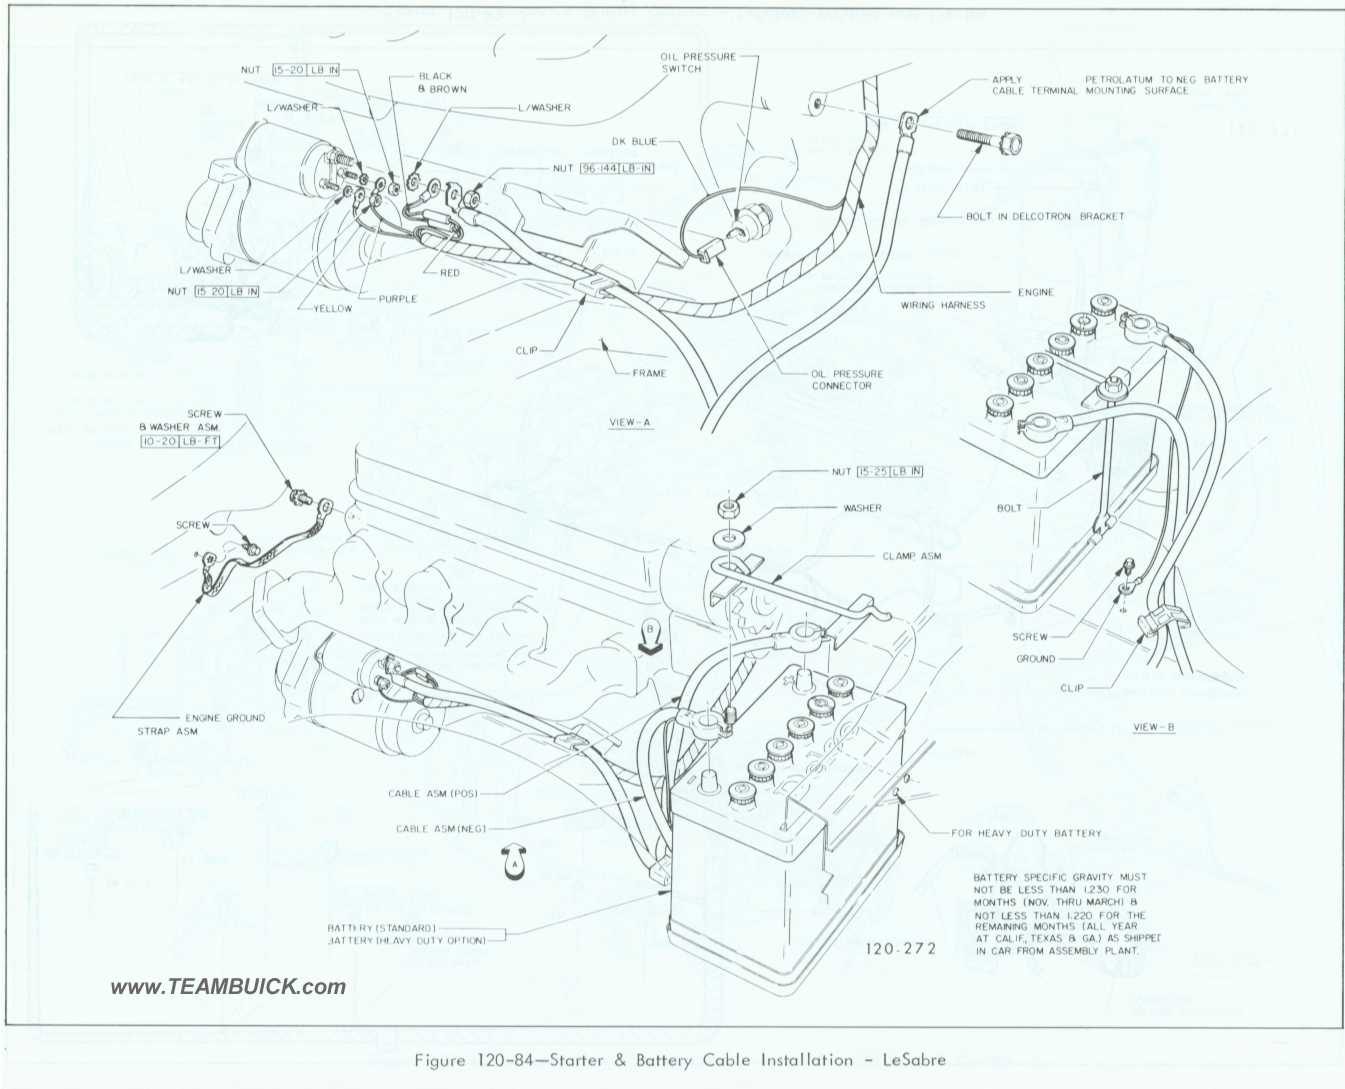 1967 Buick LeSabre, Starter and Battery Cable Installation